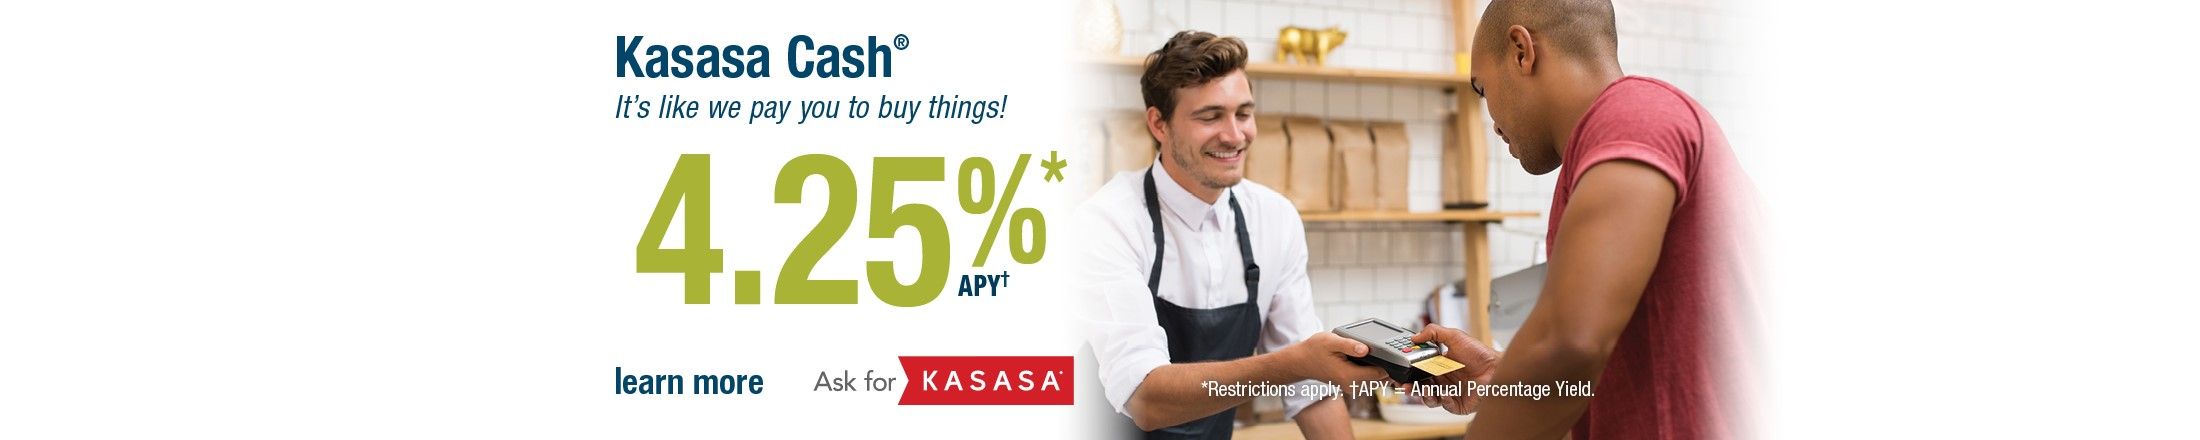 Kasasa Cash Checking Account